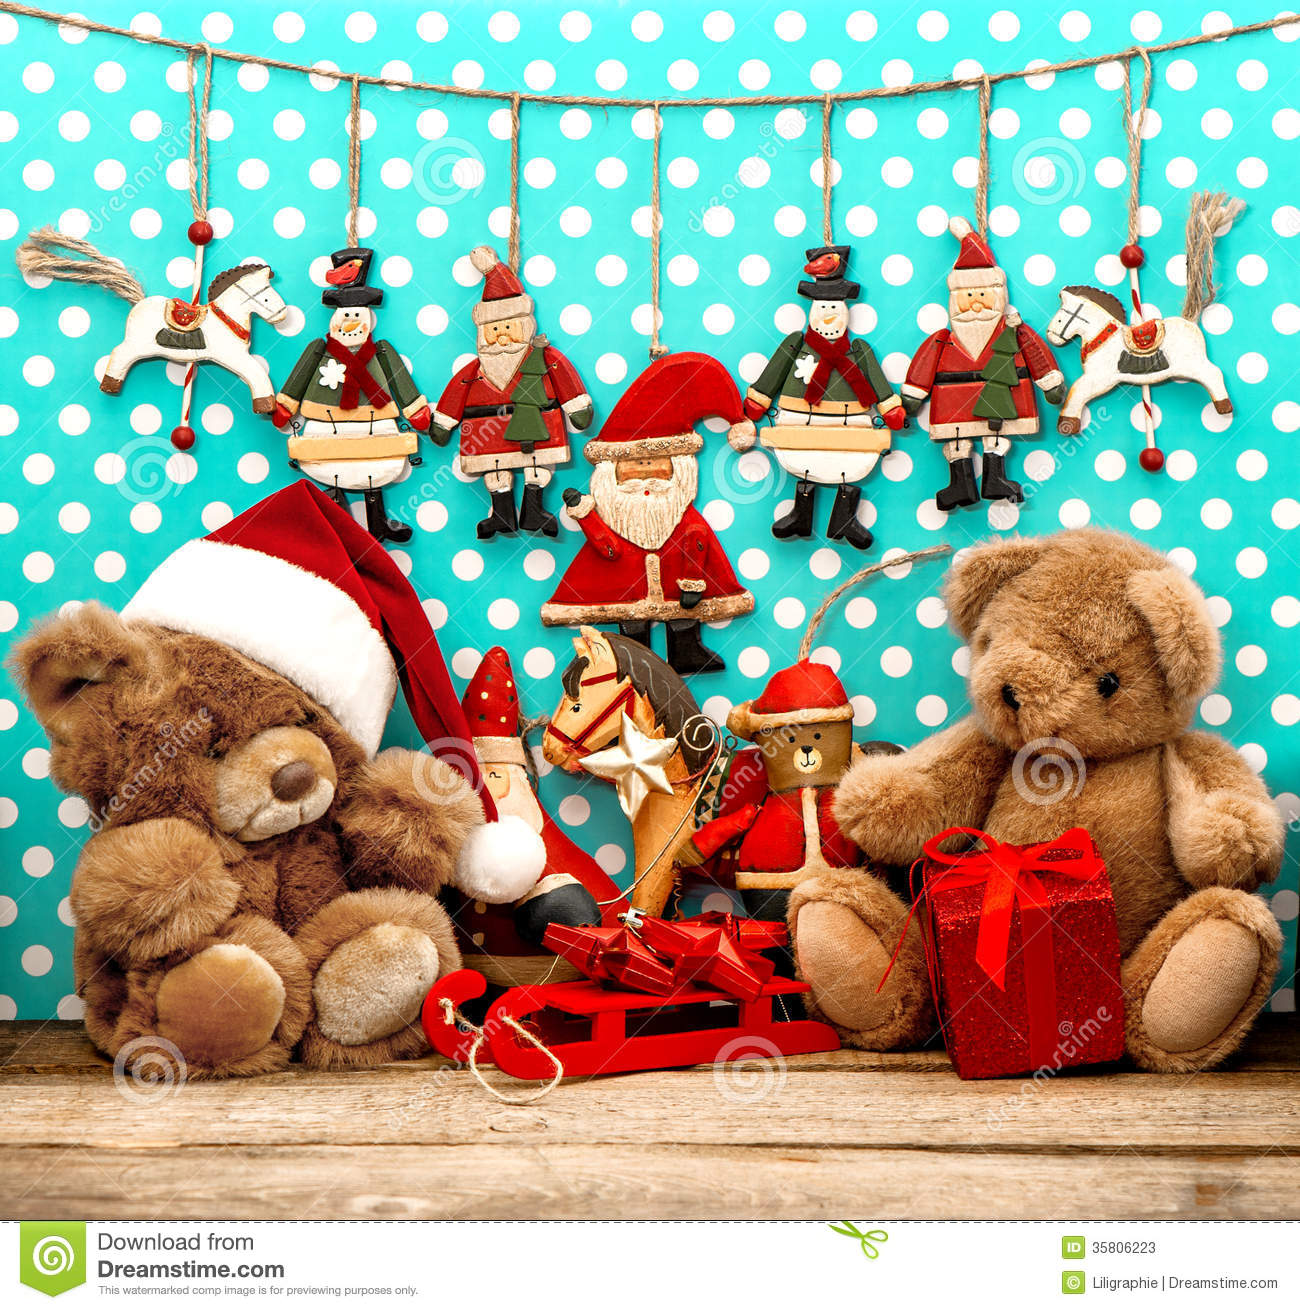 christmas decorations with antique toys and teddy bear - Bear Christmas Decorations